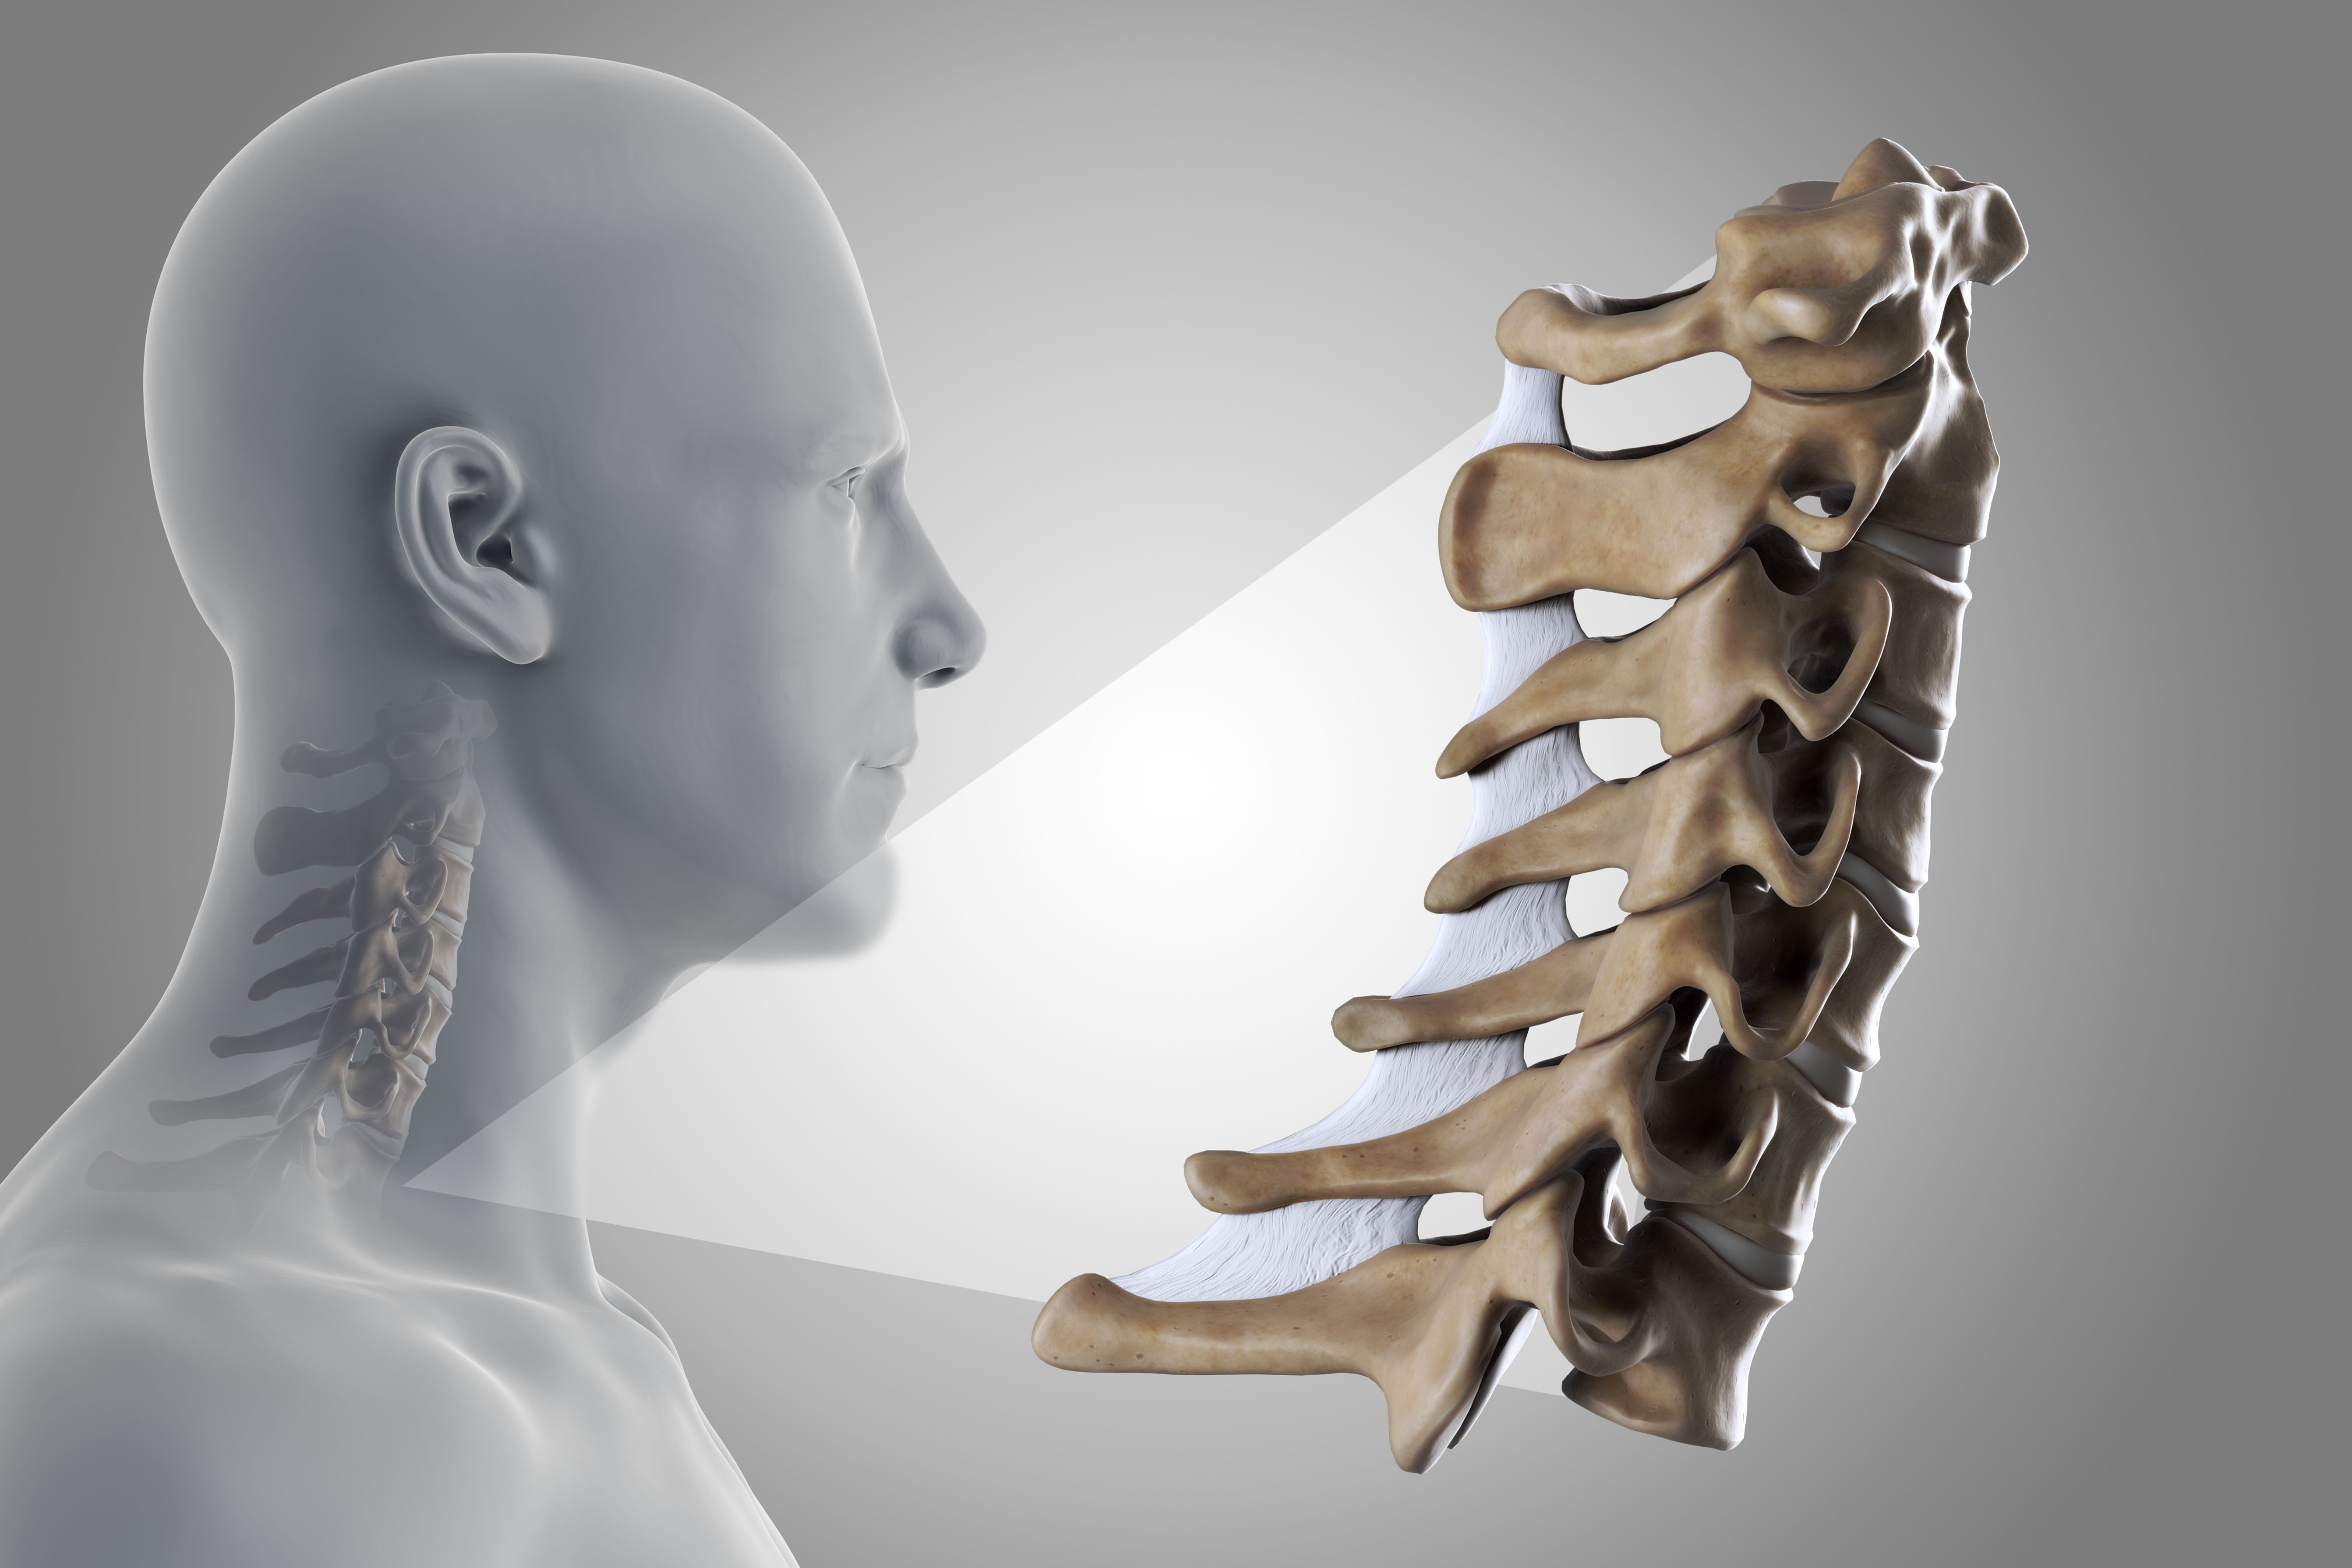 Should You Have Surgery For Cervical Radiculopathy